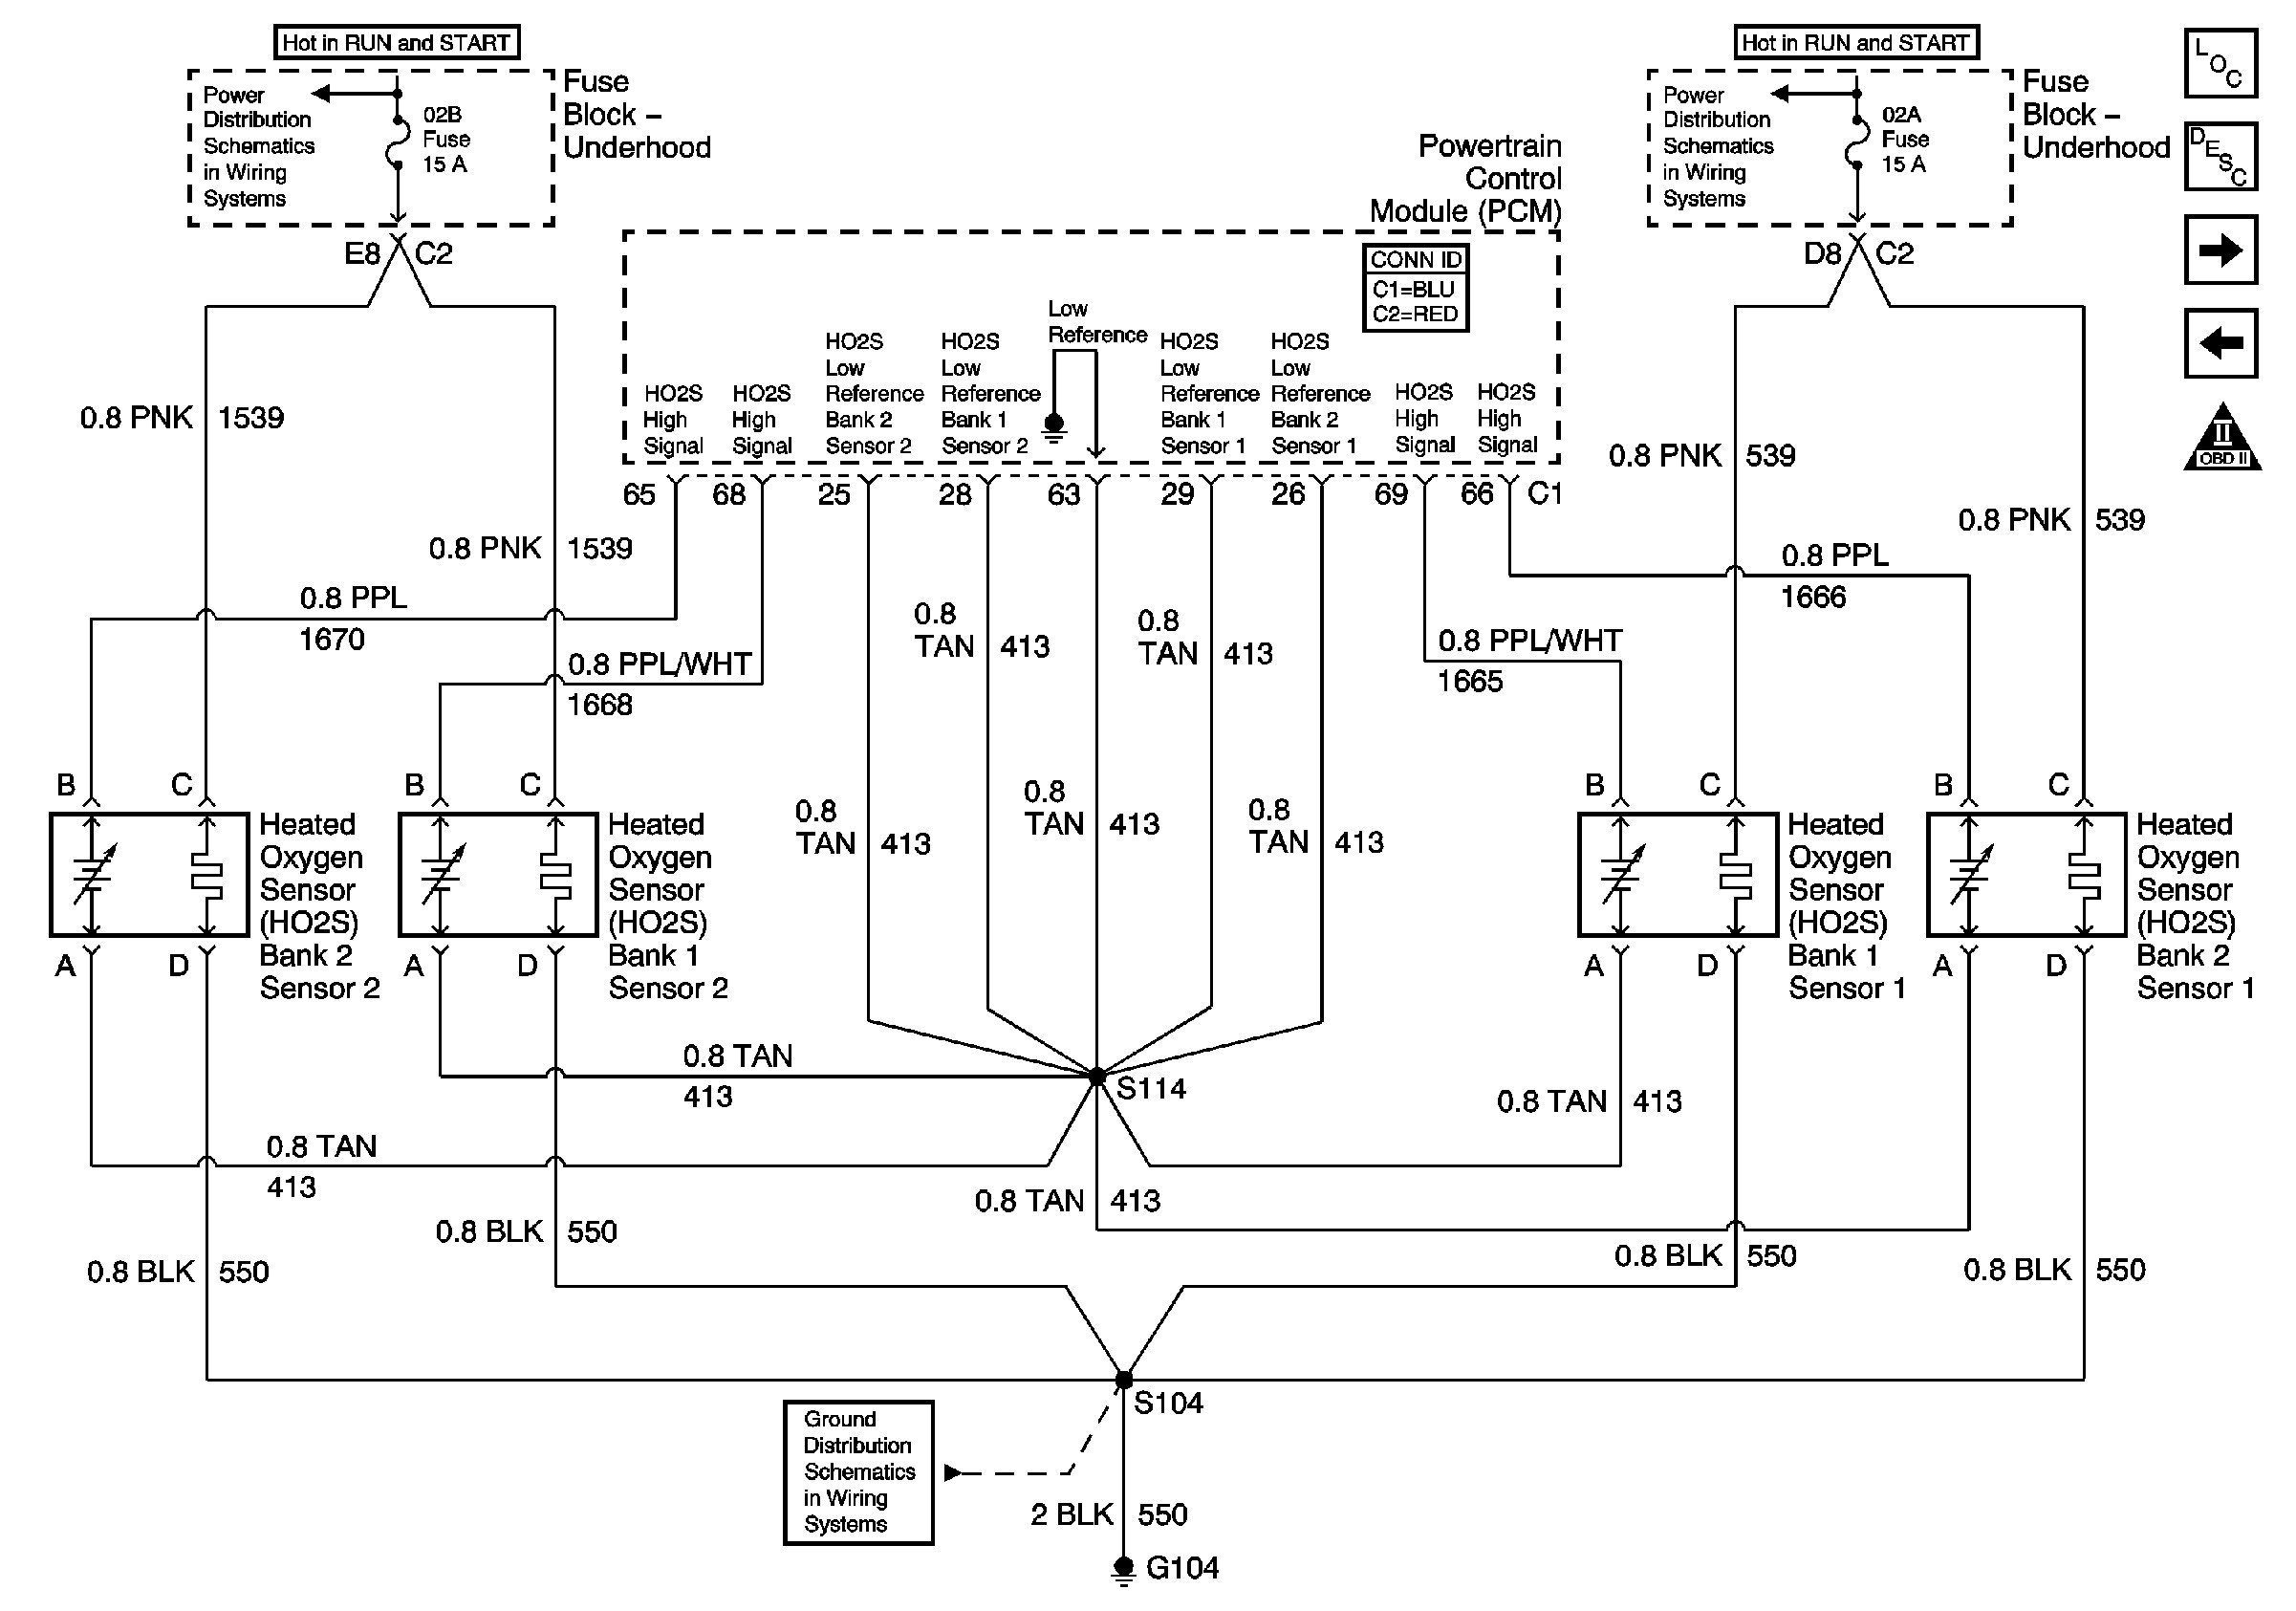 Wiring Diagram 2000 Monte Carlo Ss 3 8 Get Free Image About Wiring on 2001 camaro wiring diagram, monte carlo engine diagram, 96 monte carlo window diagram, 1984 monte carlo window diagram, monte carlo window switch diagram, monte carlo power window diagram, 2004 chevy monte carlo exhaust diagram,